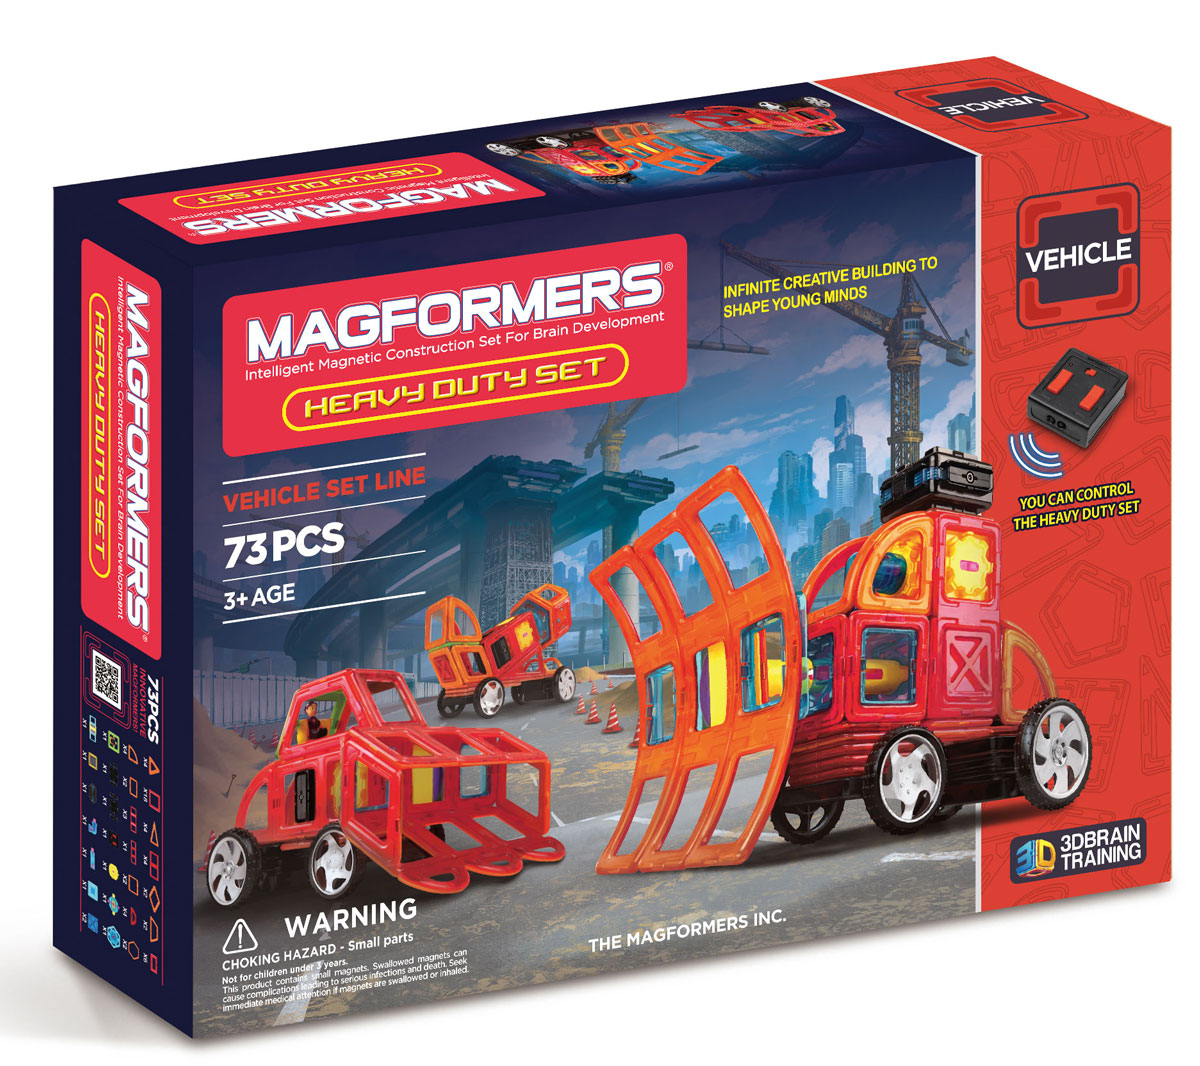 Magformers Магнитный конструктор Heavy Duty Set magformers build up set